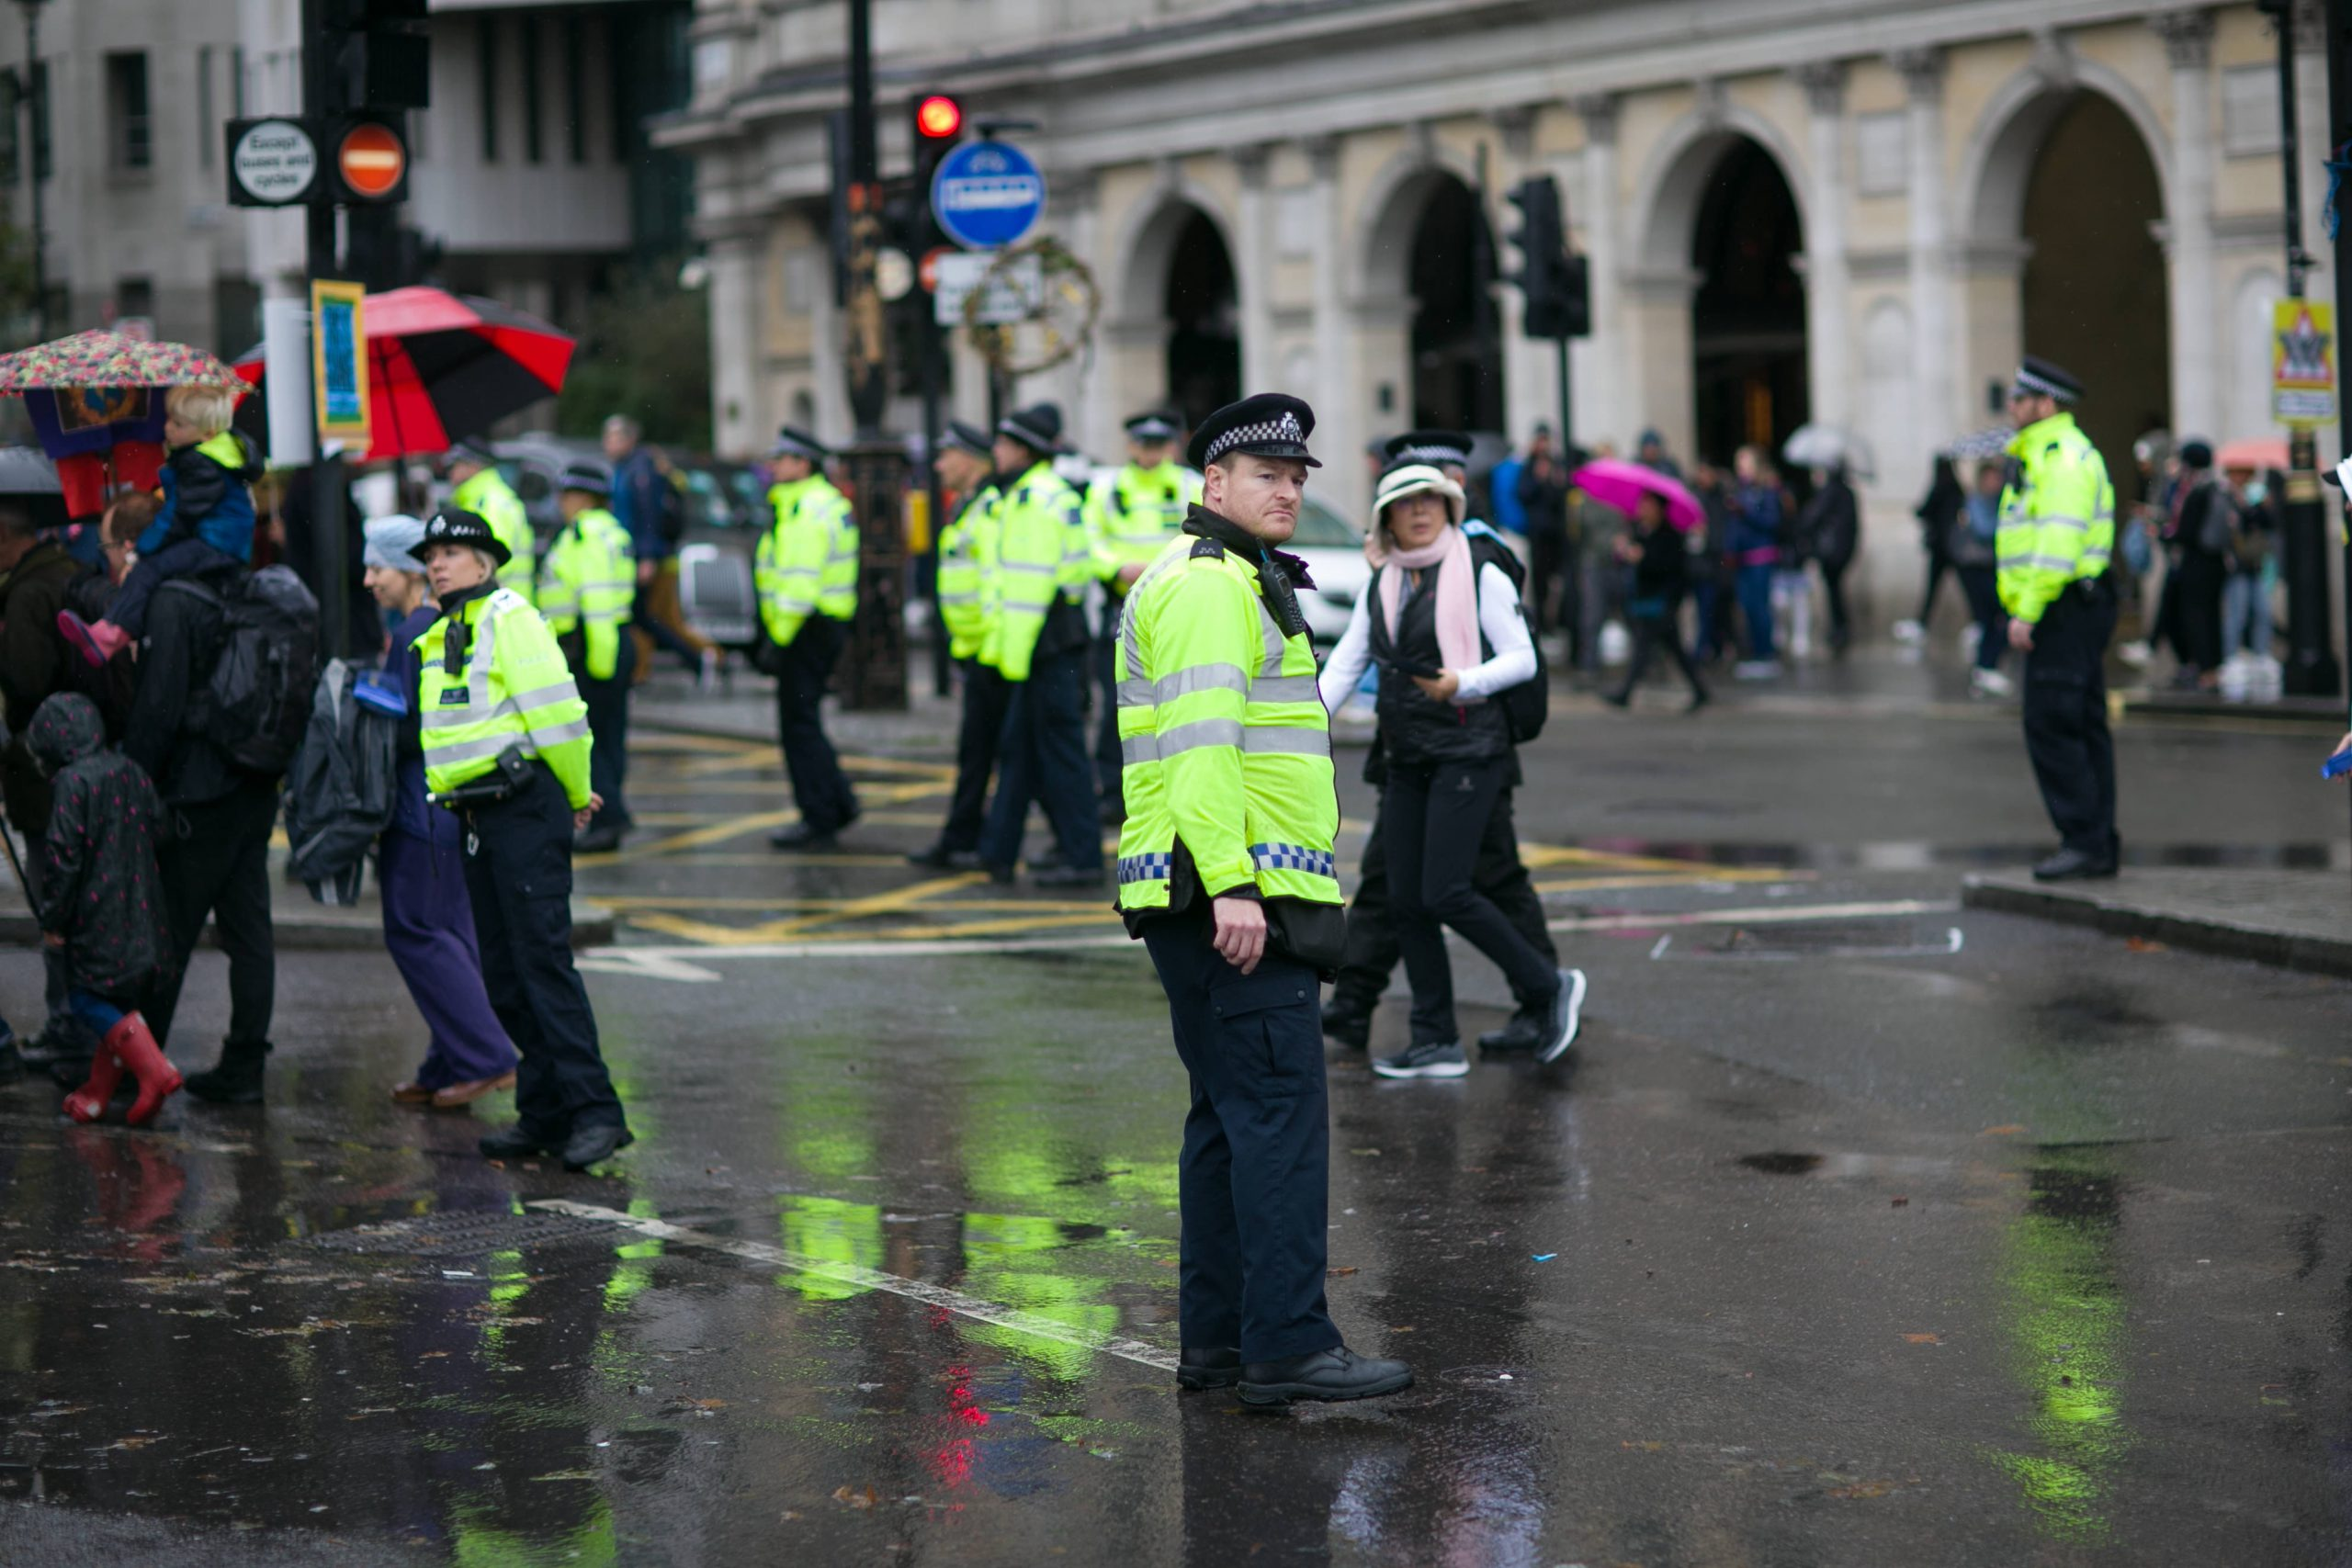 Group of police officers standing one the road and at a crossing